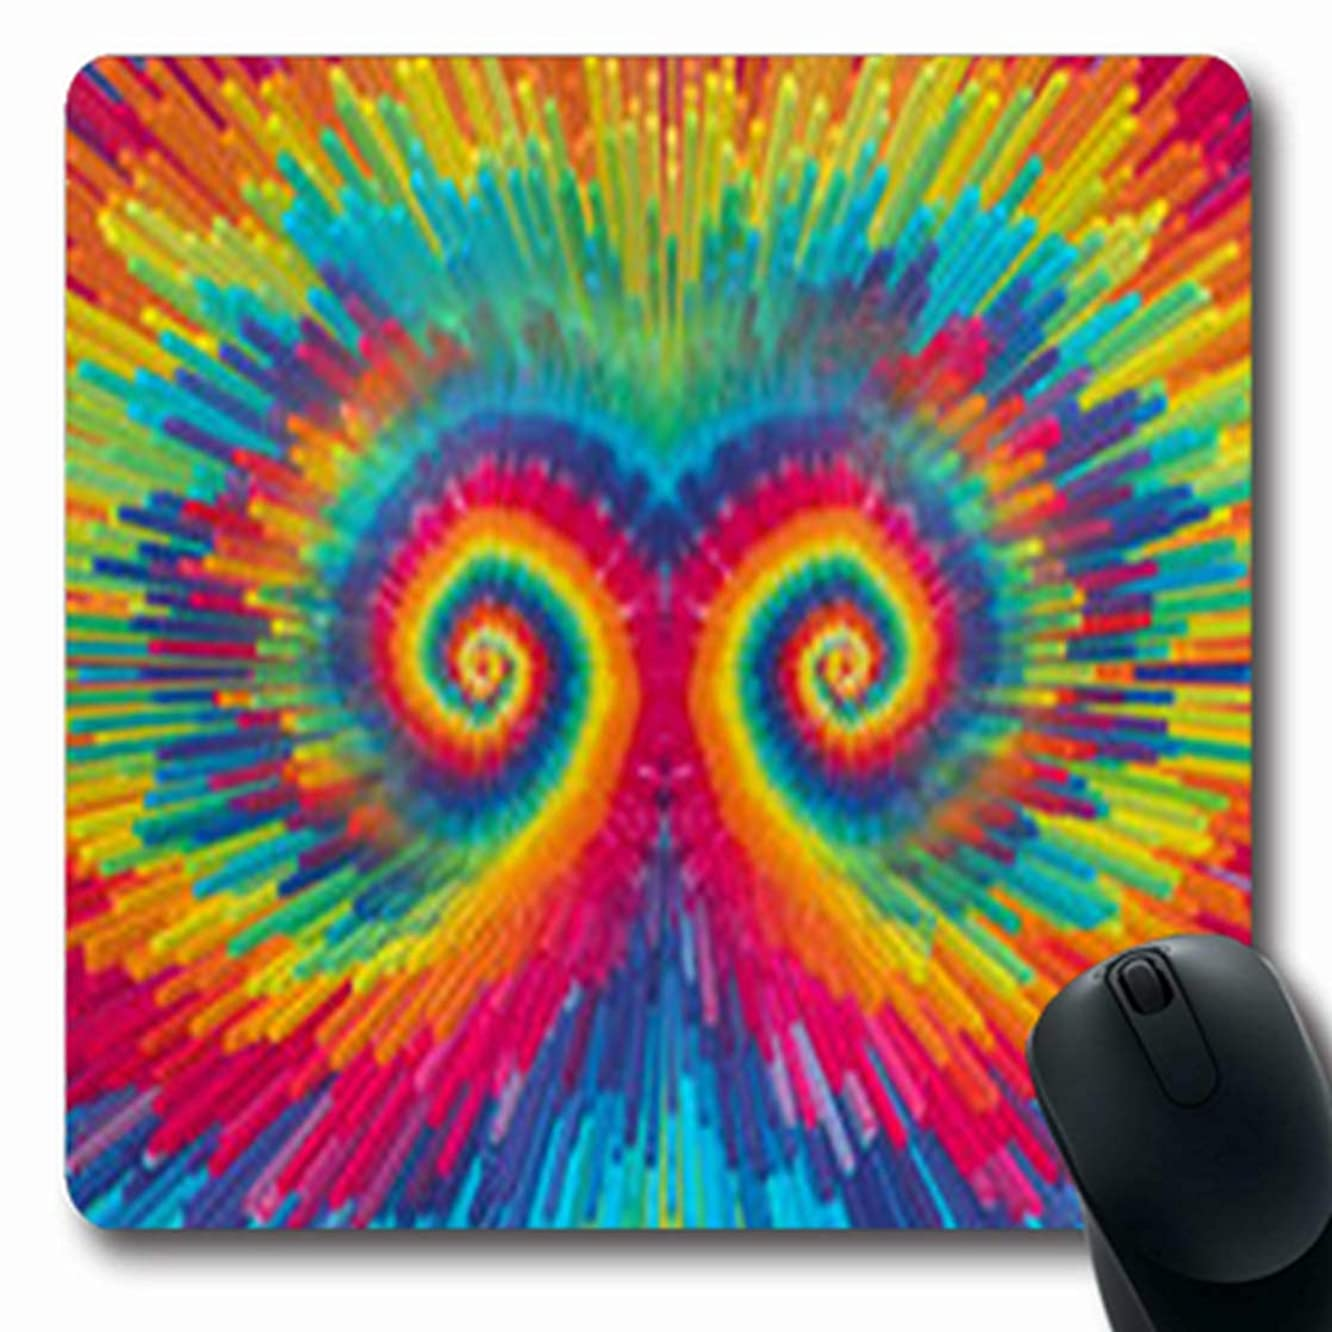 ArtsDecor Mousepads Rainbow Tie Francisco Dy Swirl Abstract Dye Spiral Oblong Shape 7.9 x 9.5 Inches Oblong Gaming Mouse Pad Non-Slip Mouse Mat